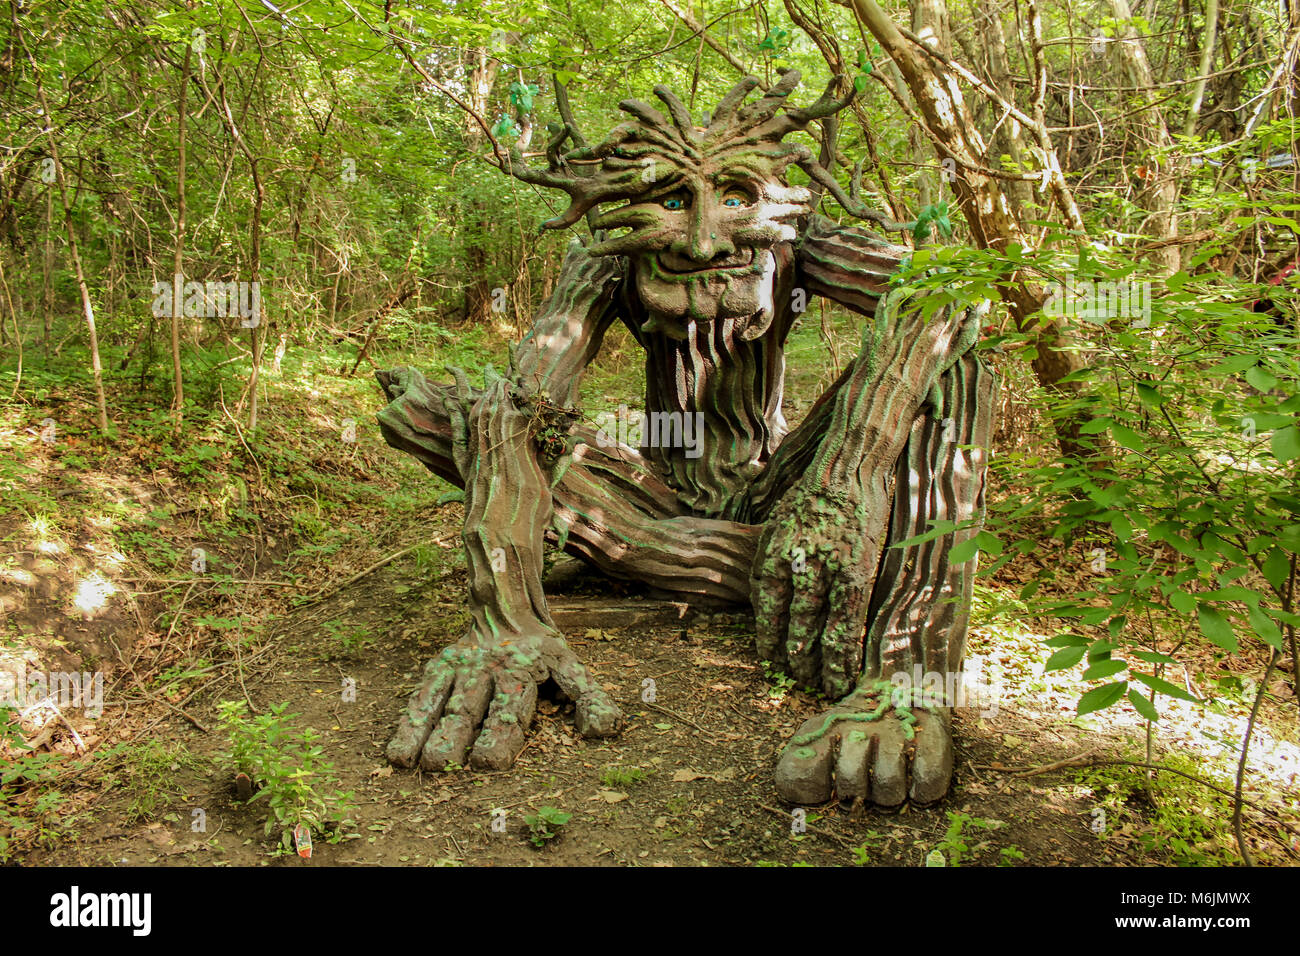 Woodland greenman sculpture setting in forest dappled with sun and shade at Renassiance Festival Muskogee Oklahoma Stock Photo